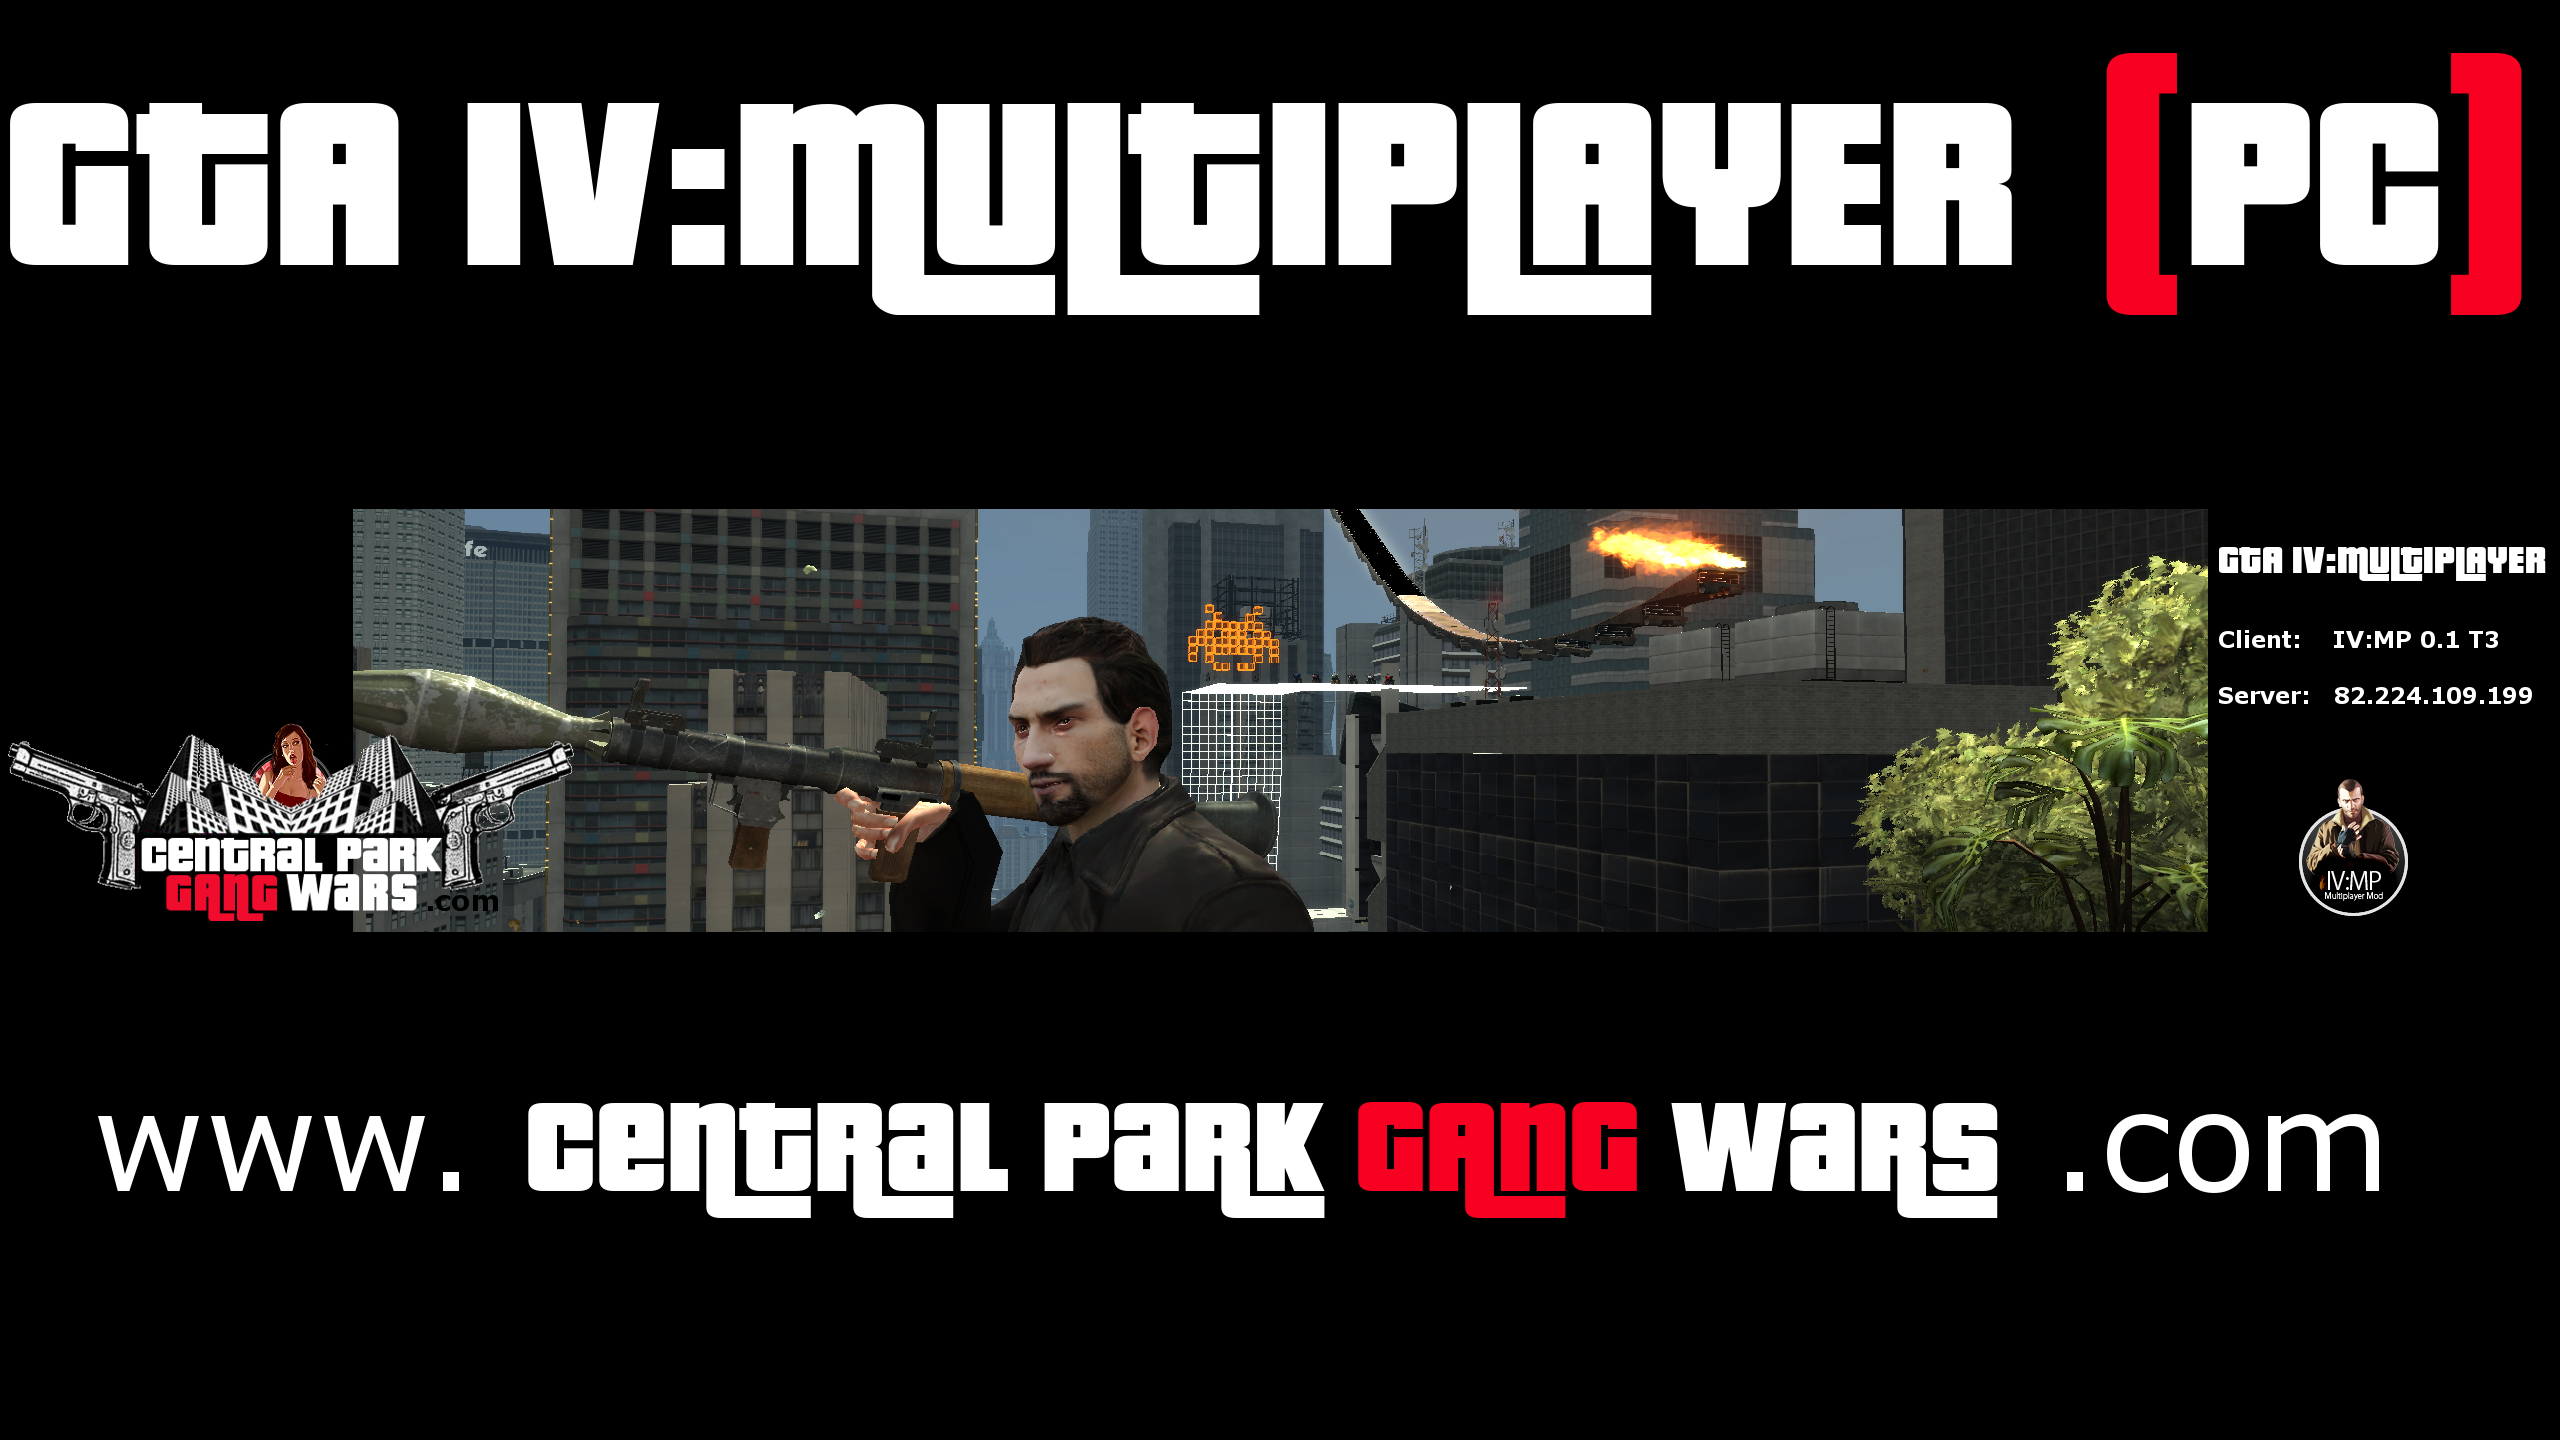 gta iv multiplayer - central park gang wars